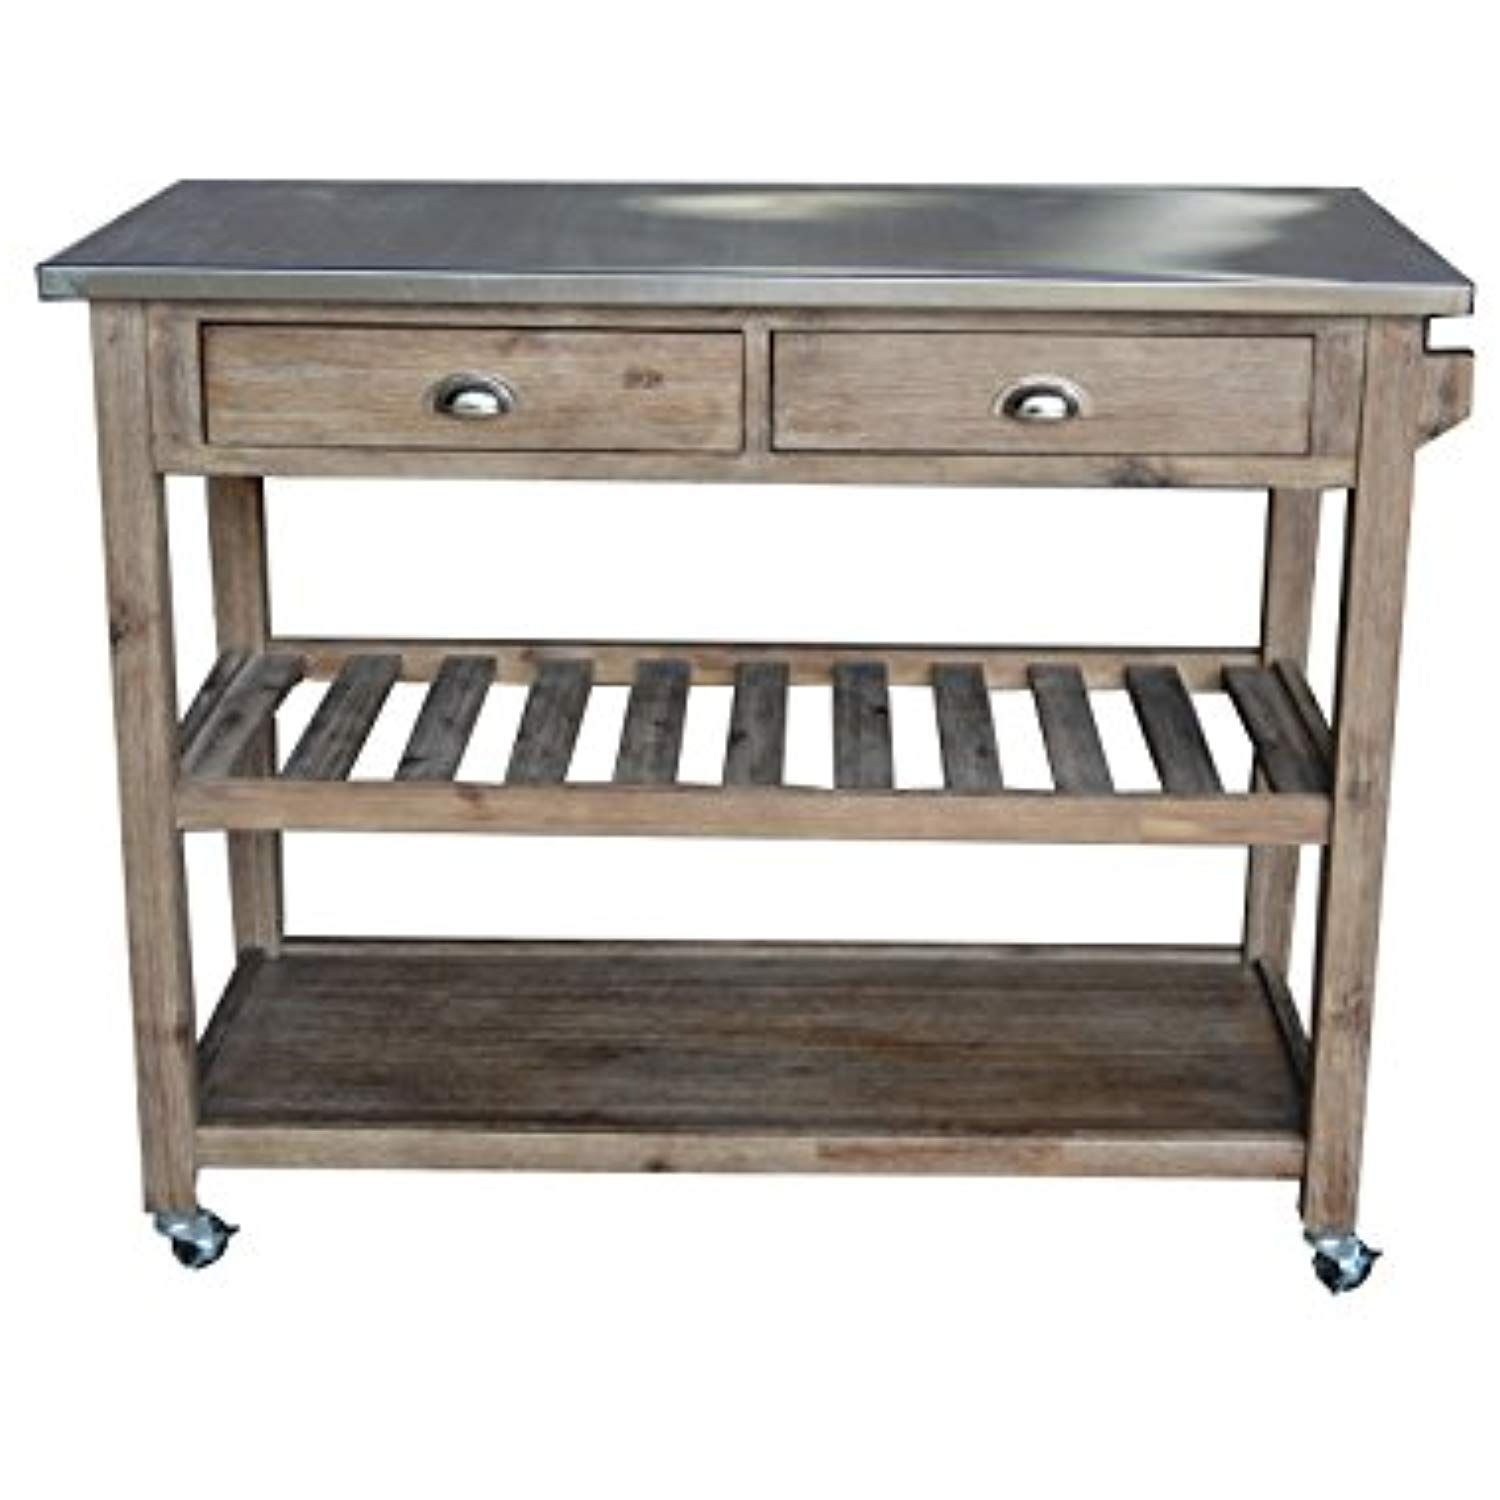 Boraam sonoma wirebrush kitchen cart ueueue you can get more